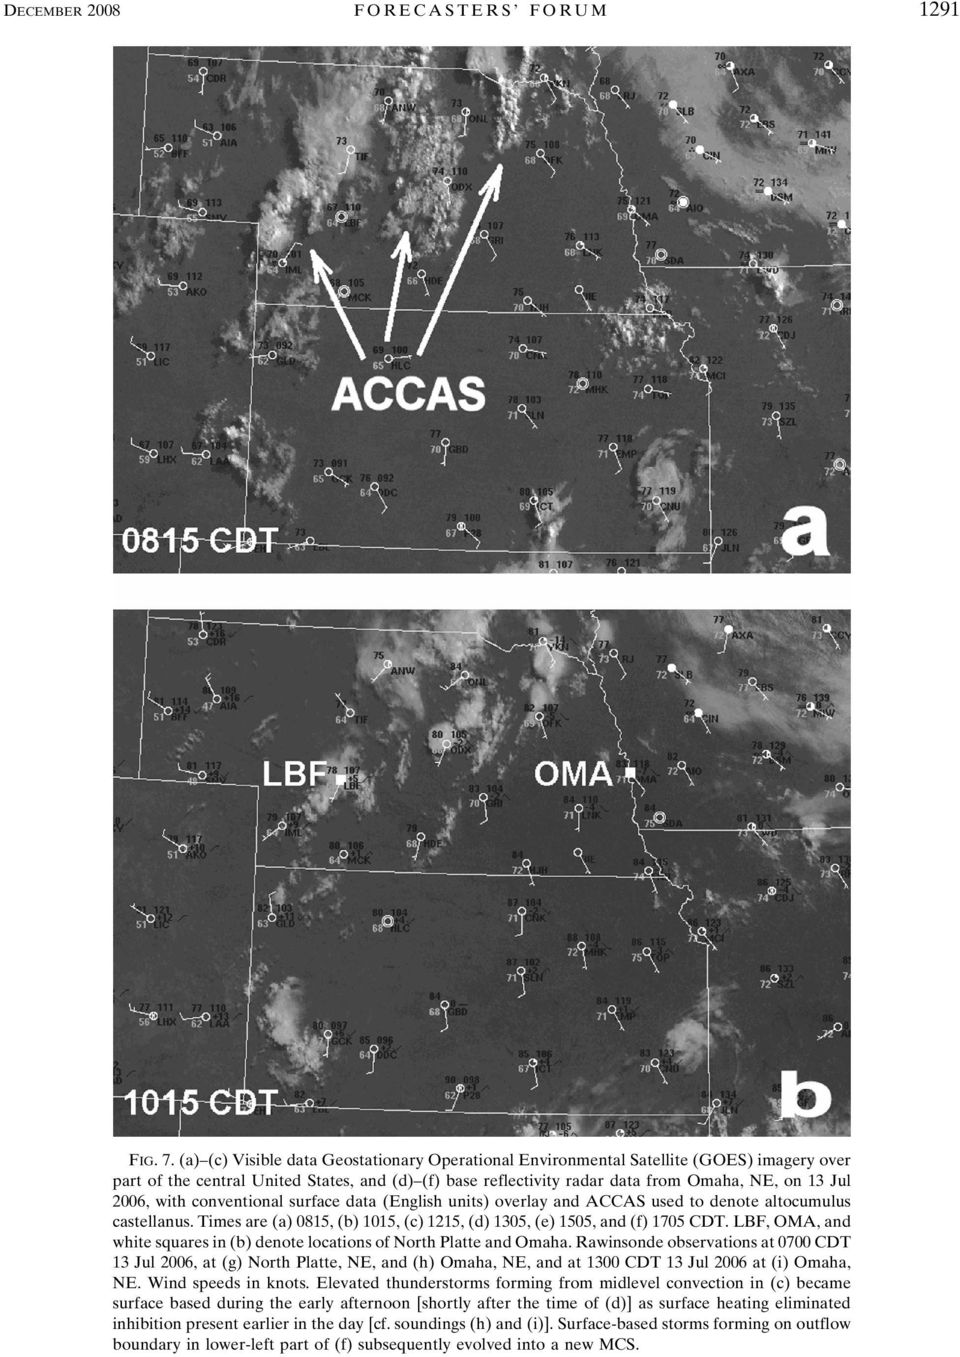 with conventional surface data (English units) overlay and ACCAS used to denote altocumulus castellanus. Times are (a) 0815, (b) 1015, (c) 1215, (d) 1305, (e) 1505, and (f) 1705 CDT.